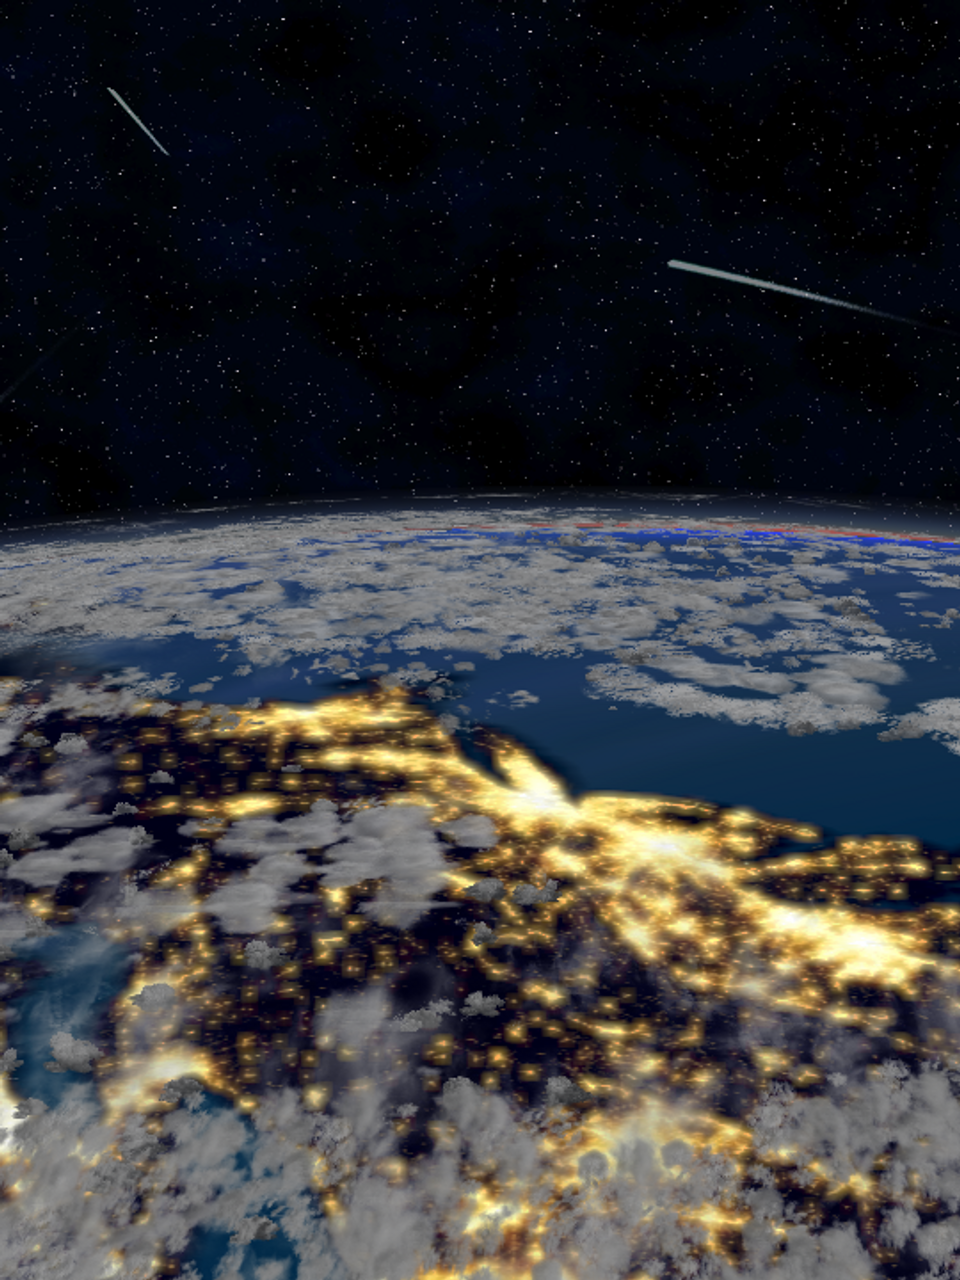 Lyrid Meteor Shower Peaks Tonight The Best Time To View The Shooting Stars Wjla